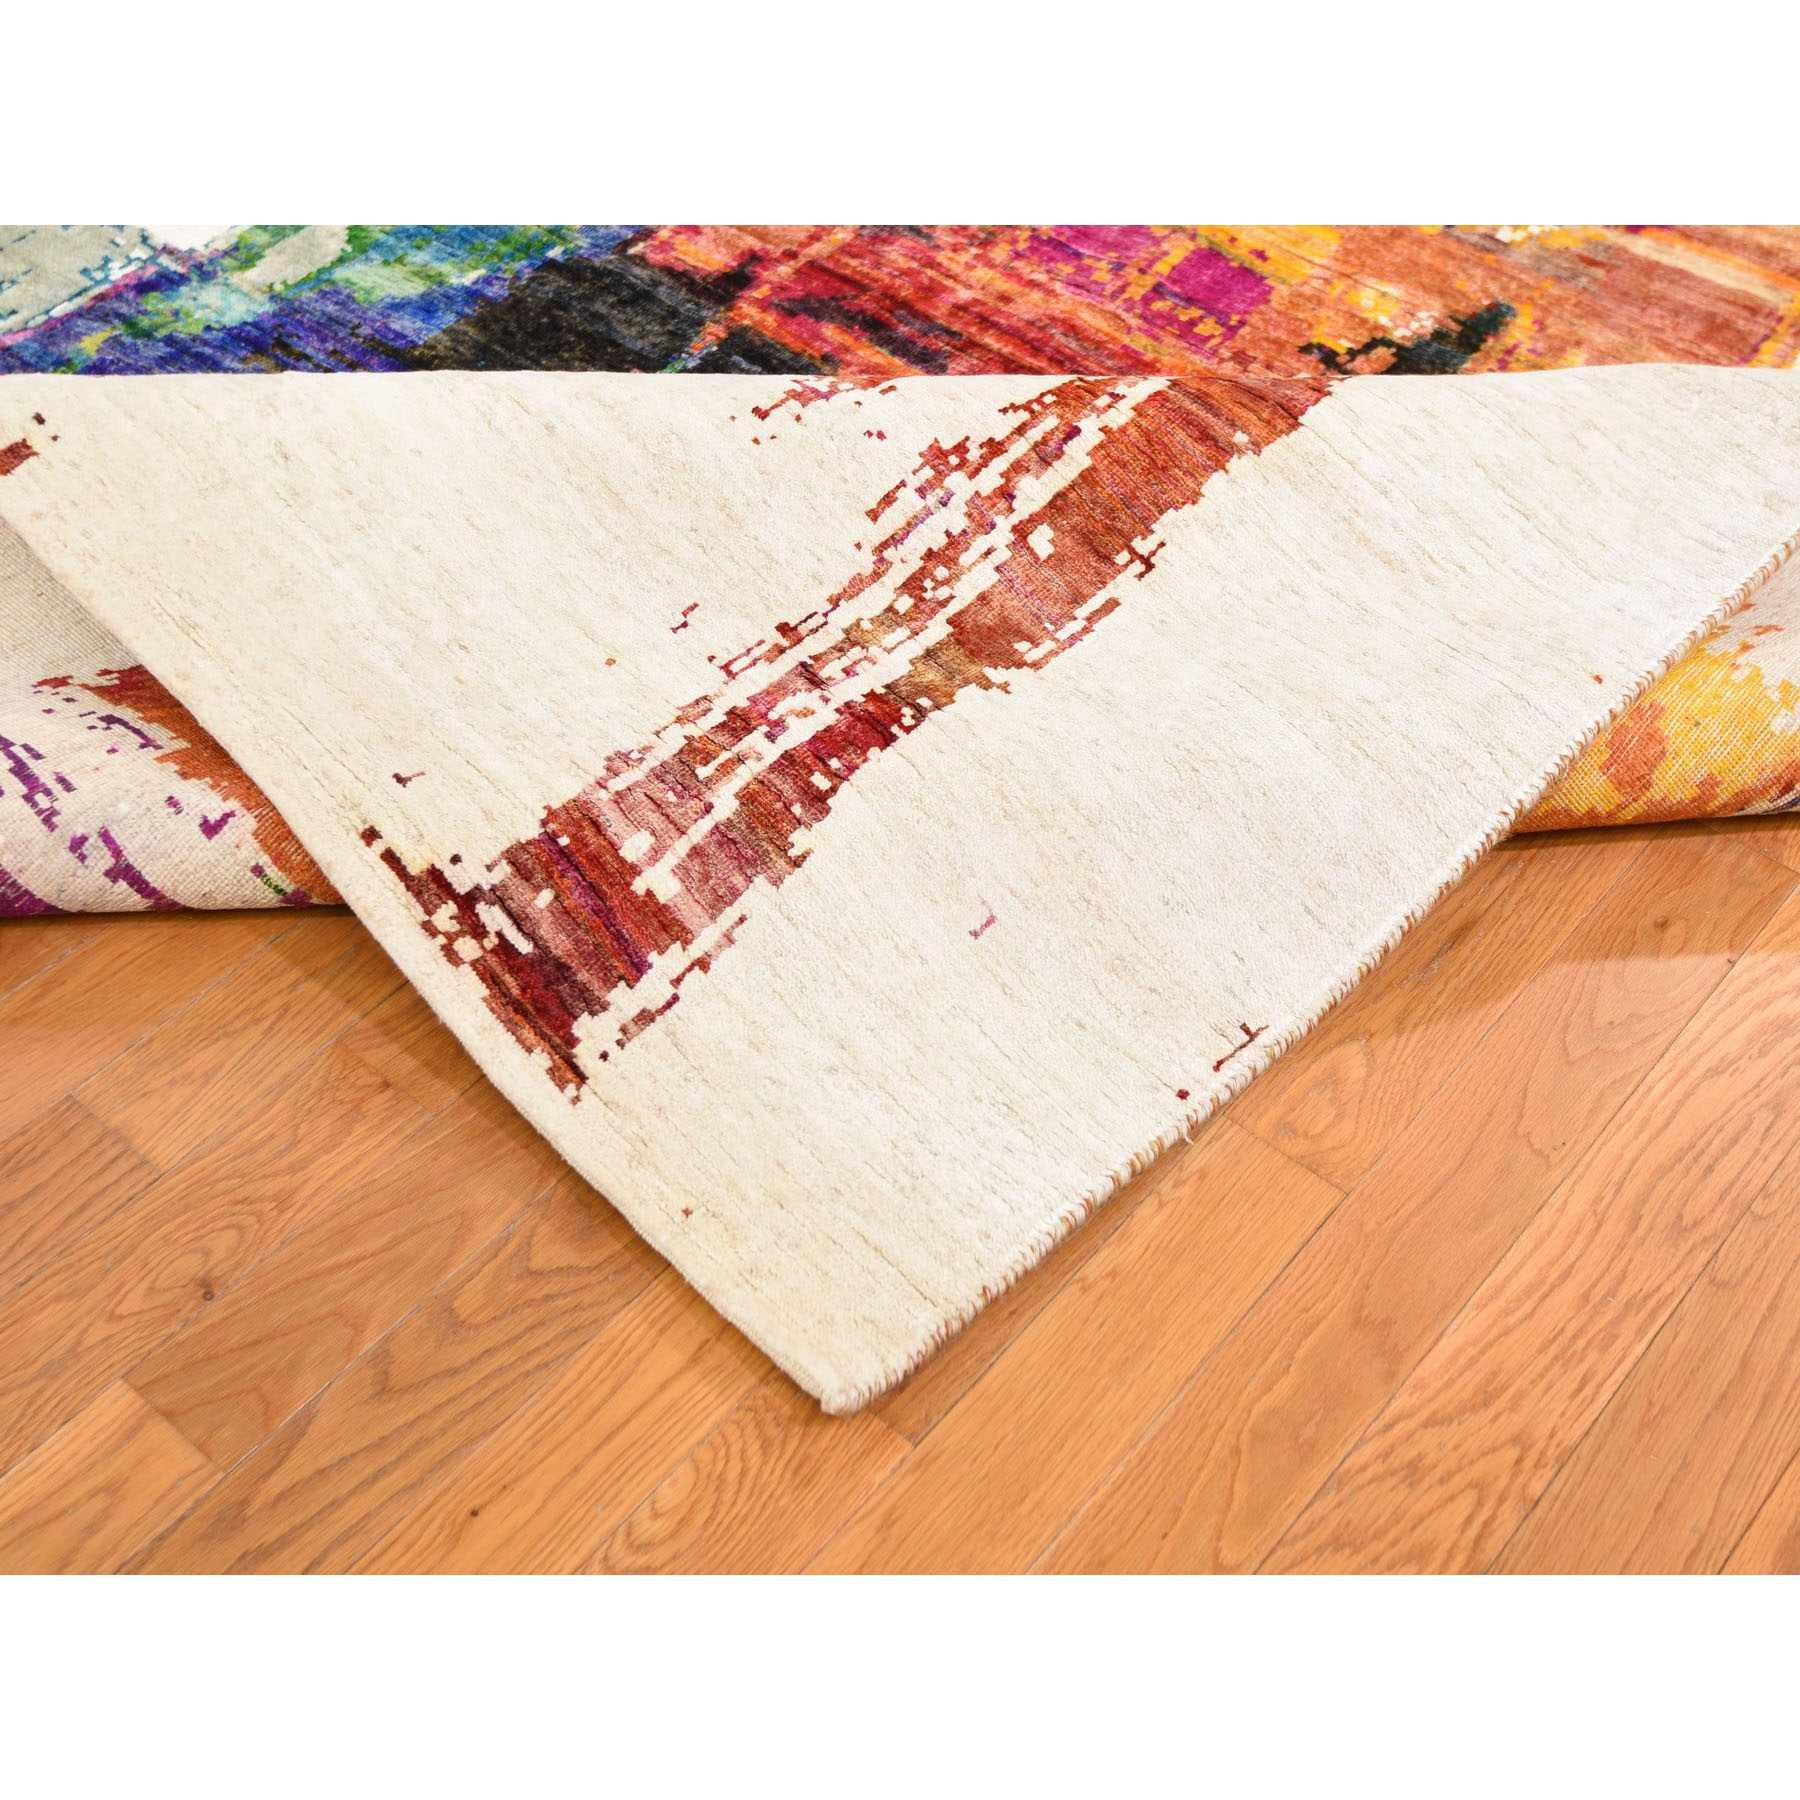 Modern-and-Contemporary-Hand-Knotted-Rug-242555